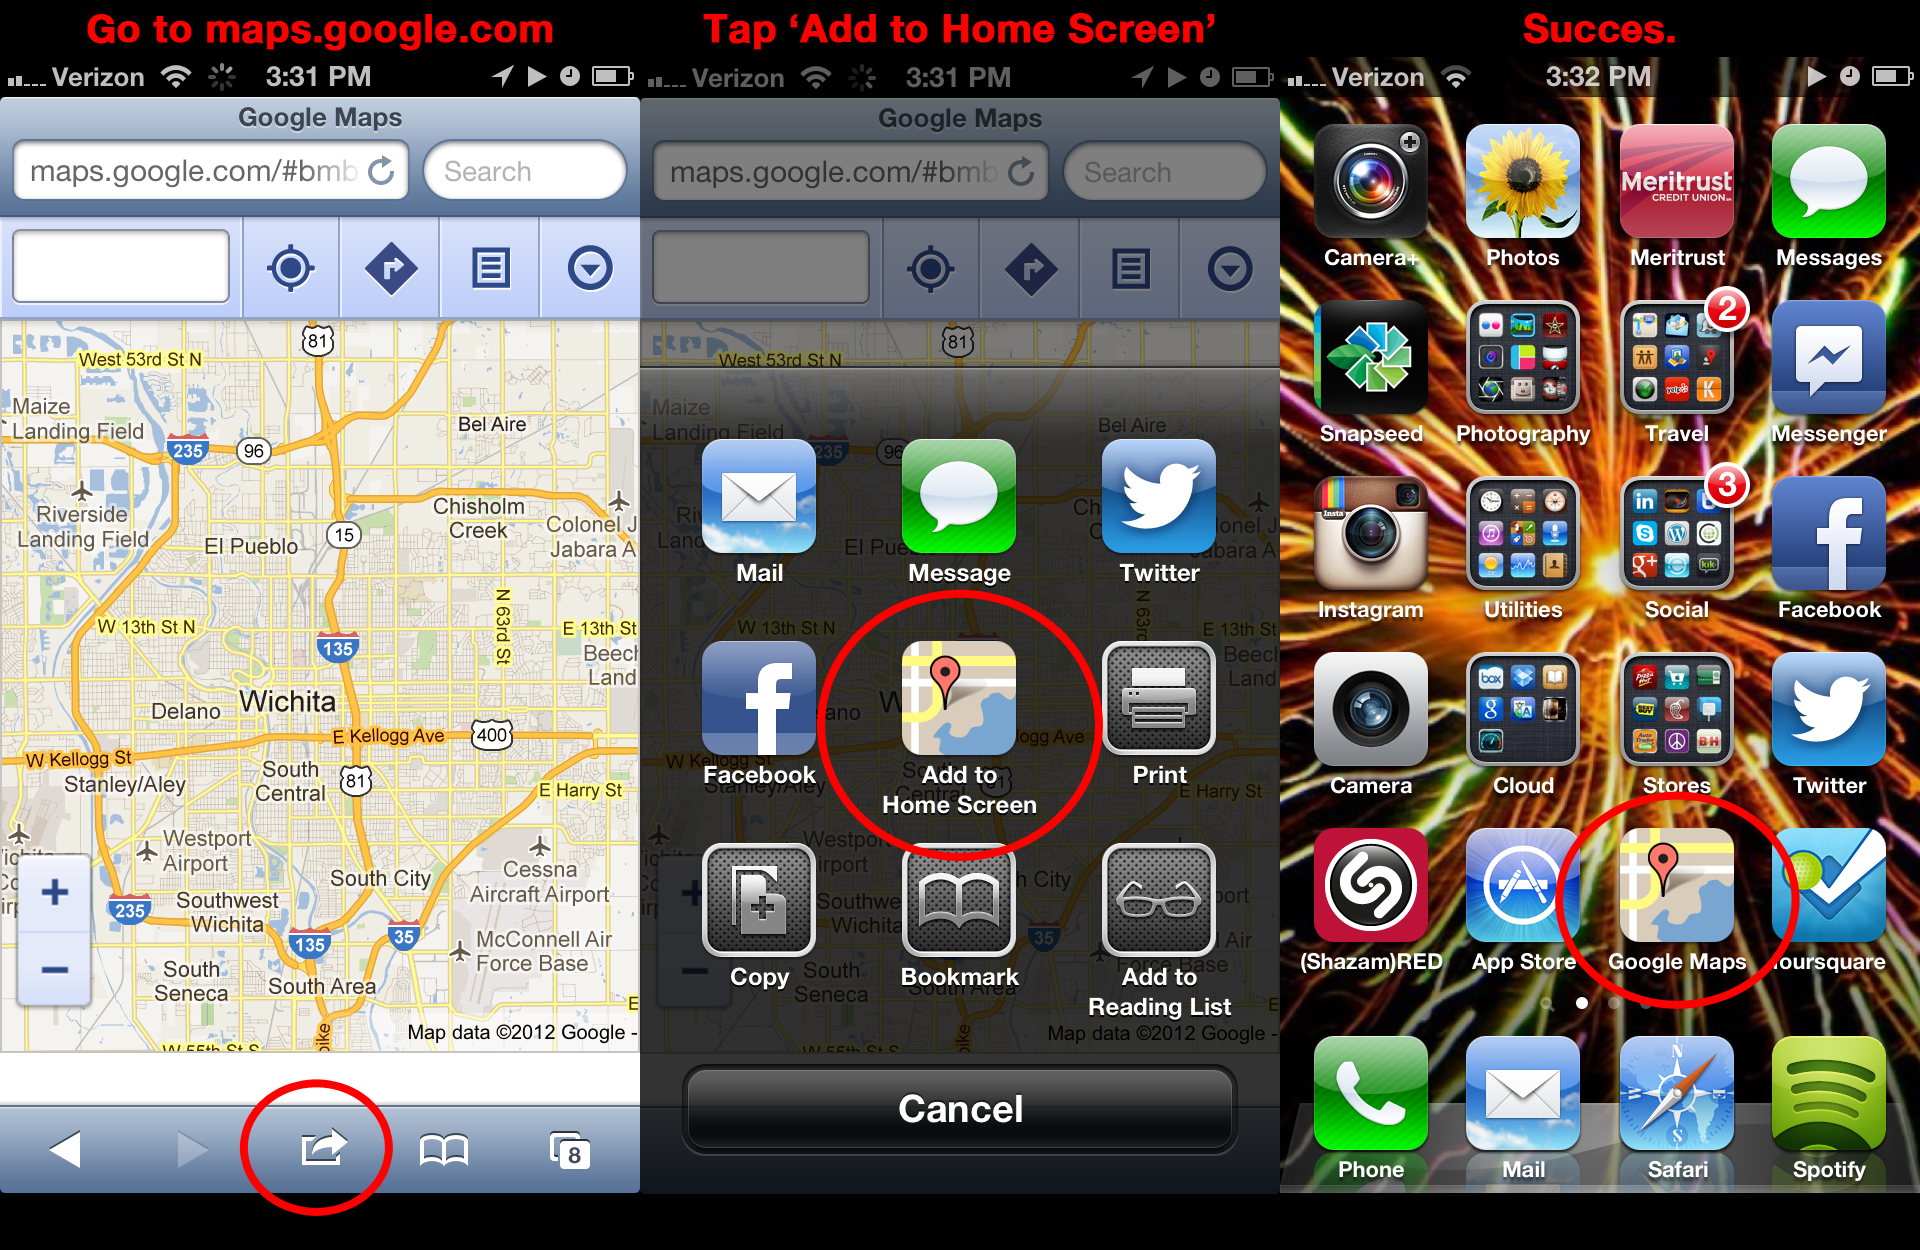 add google maps ios6 phone5 Top 10 iPhone 5 Apps 2013